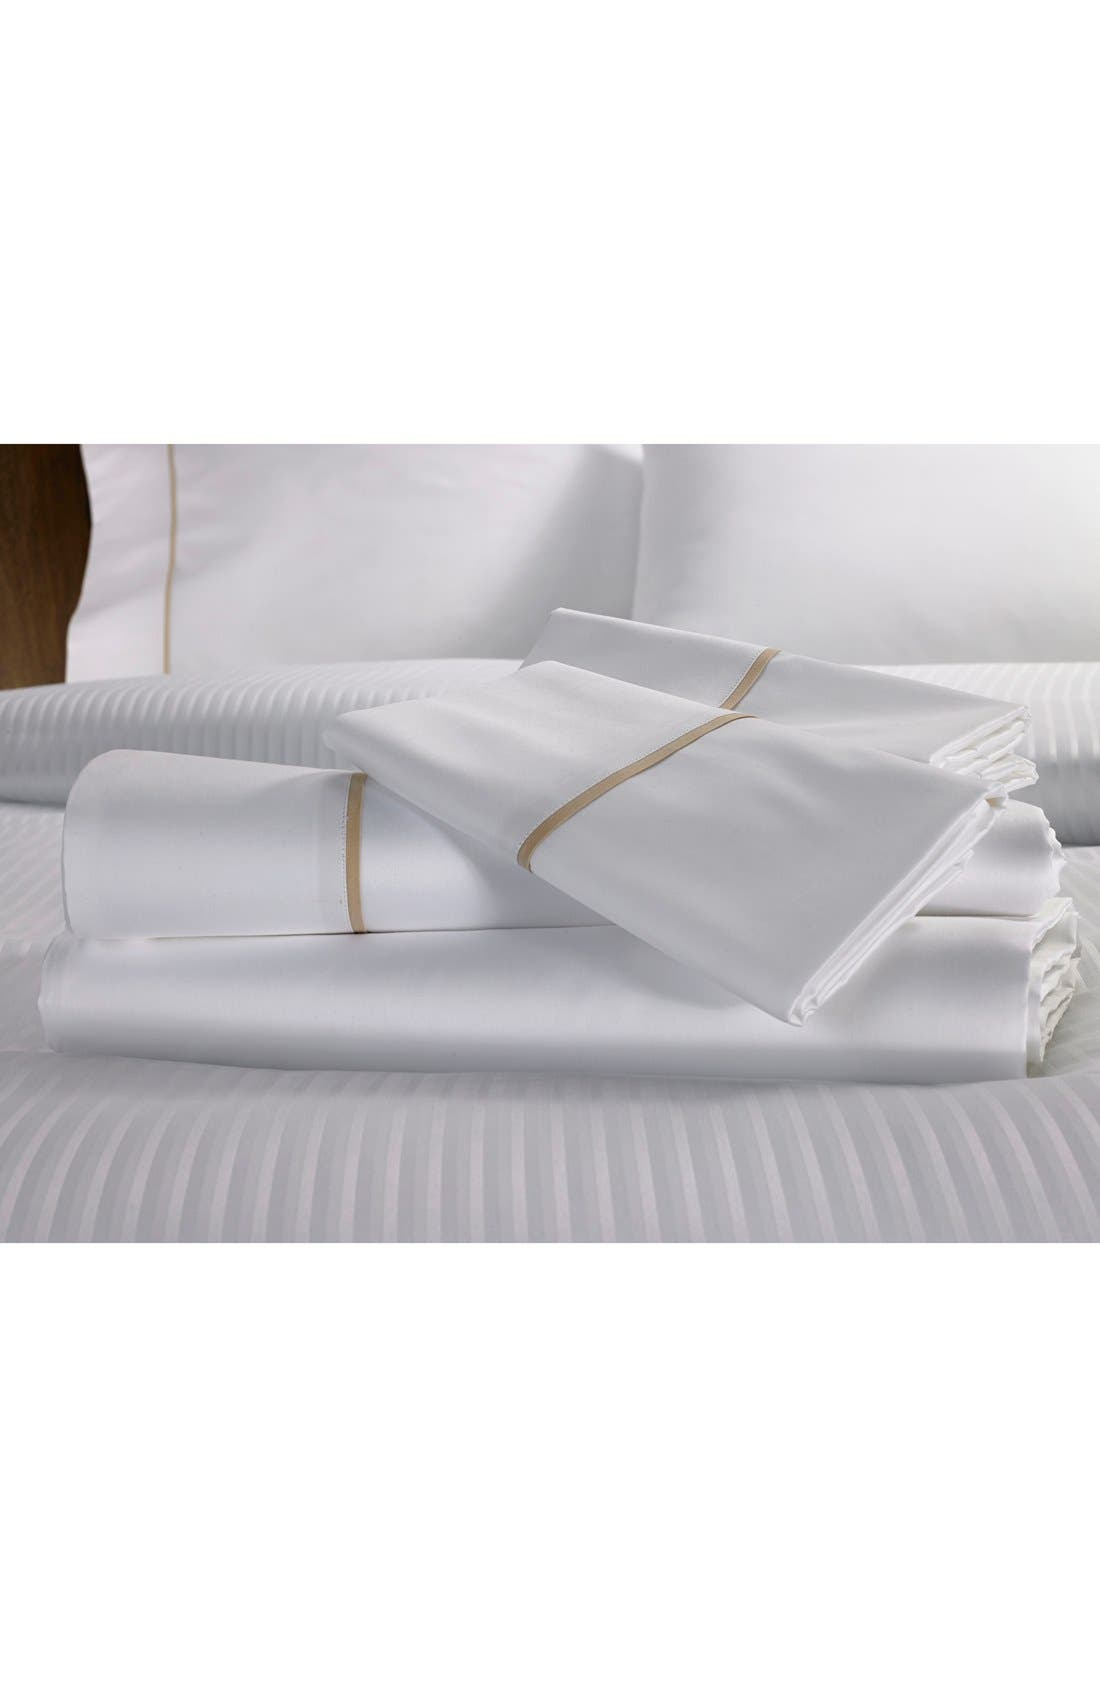 'Ultra Luxe' 600 Thread Count Flat Sheet,                             Main thumbnail 1, color,                             100